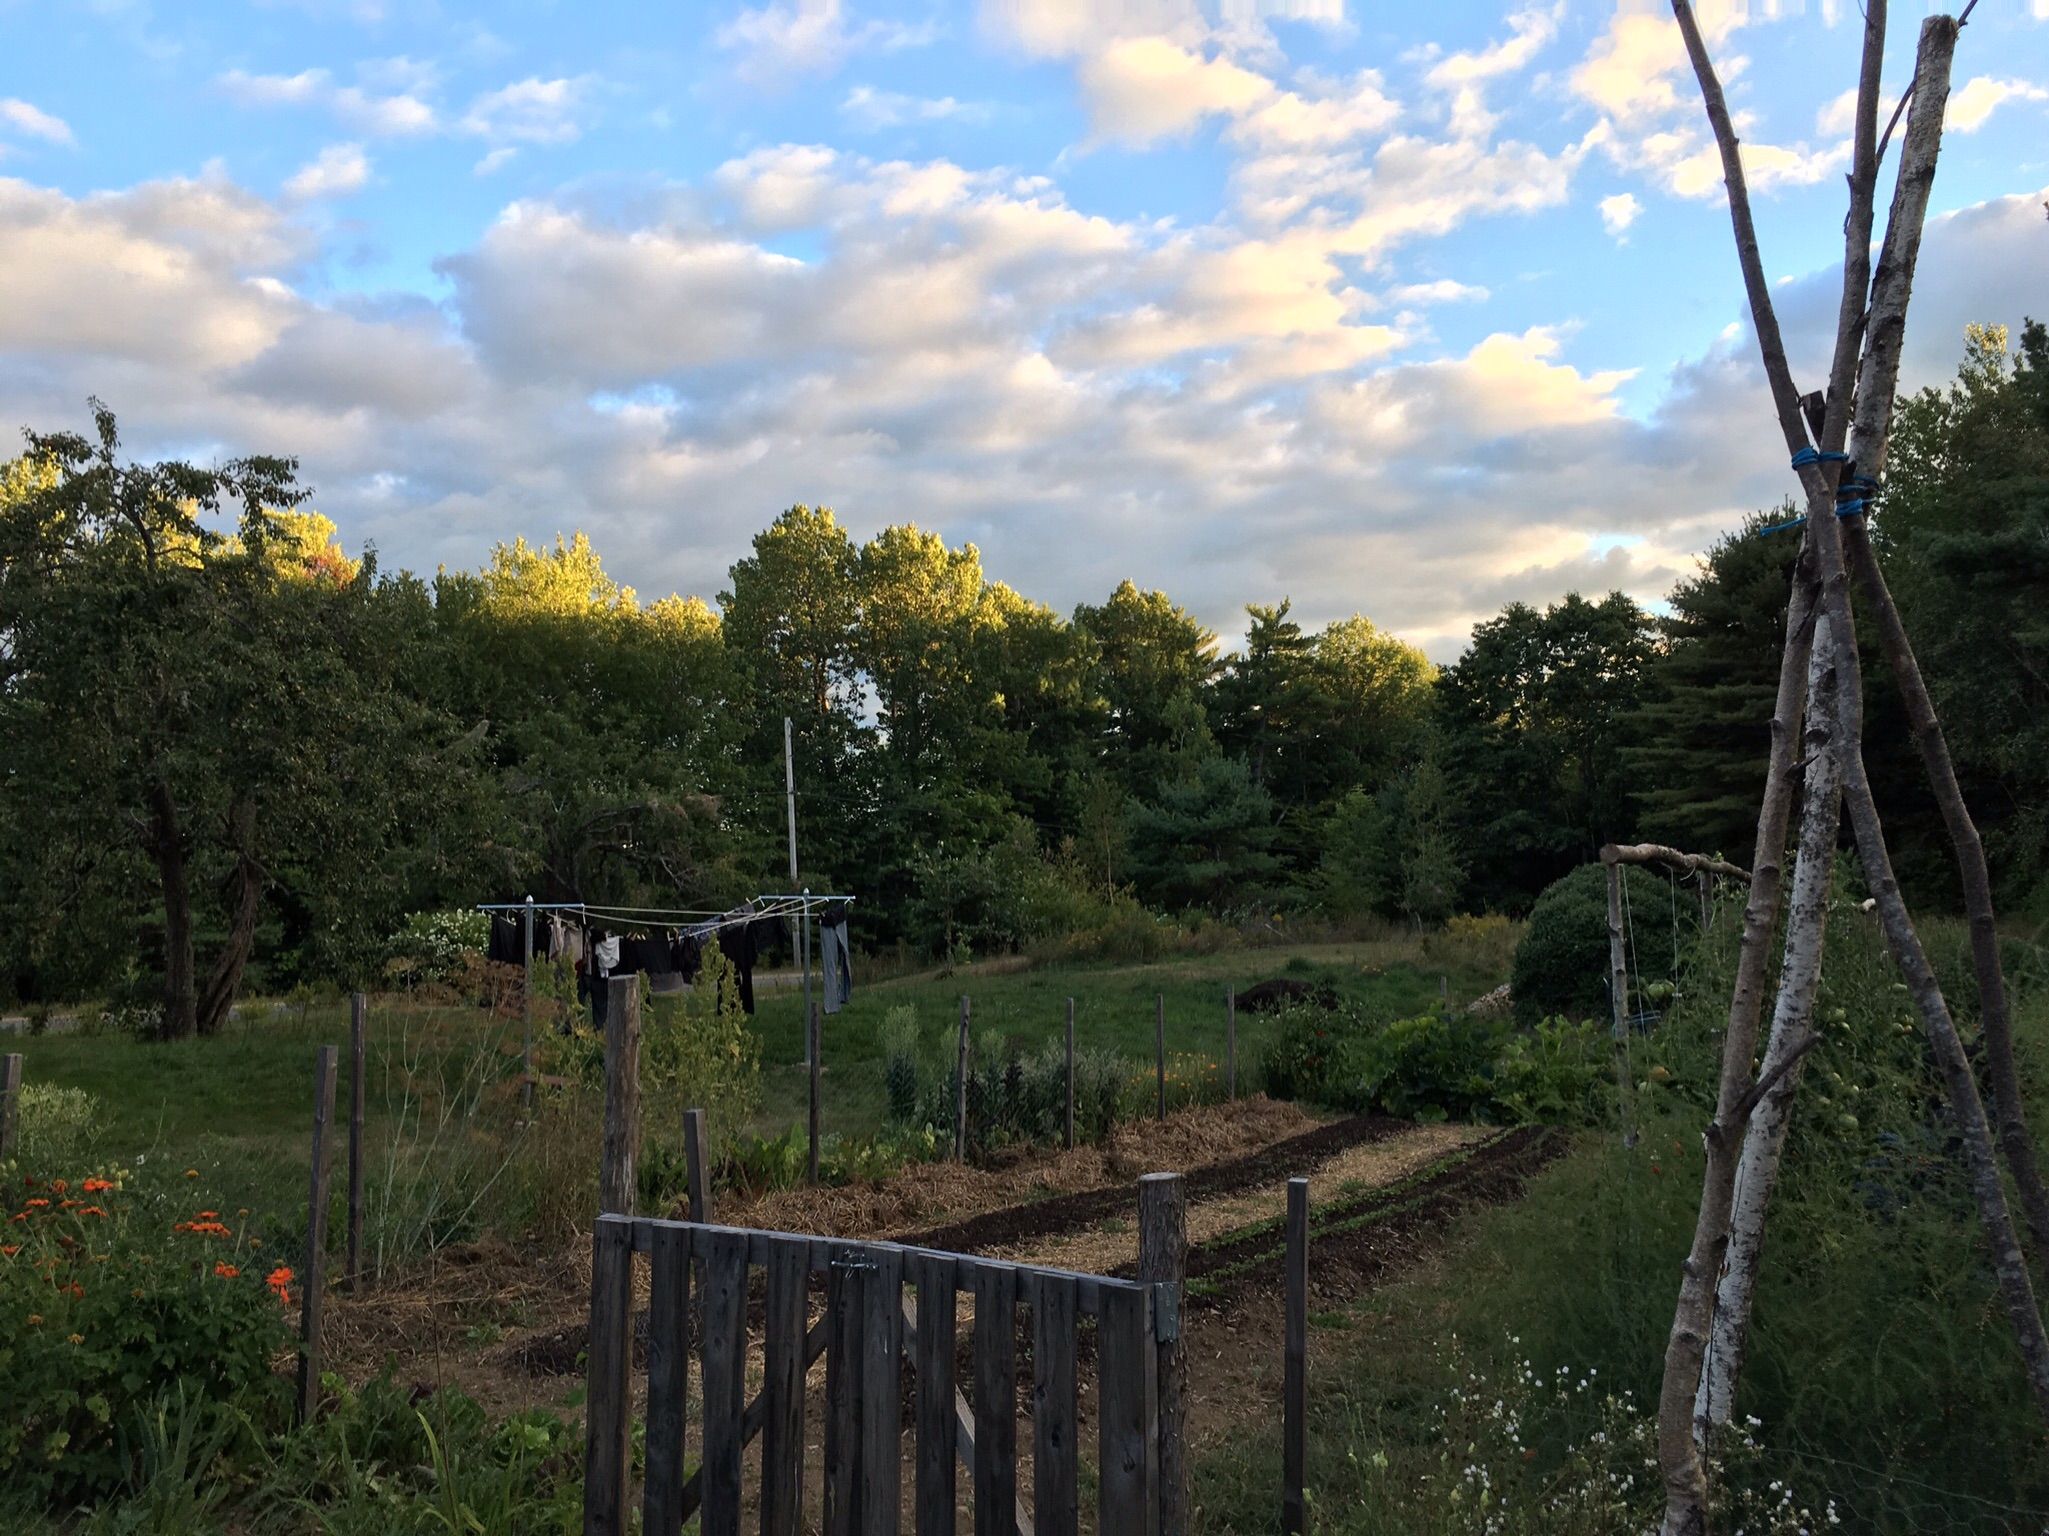 From the gate end of the garden. Mexican sunflowers (a hummingbird favorite) to the left and in the background the new clothesline Mike put up this month.